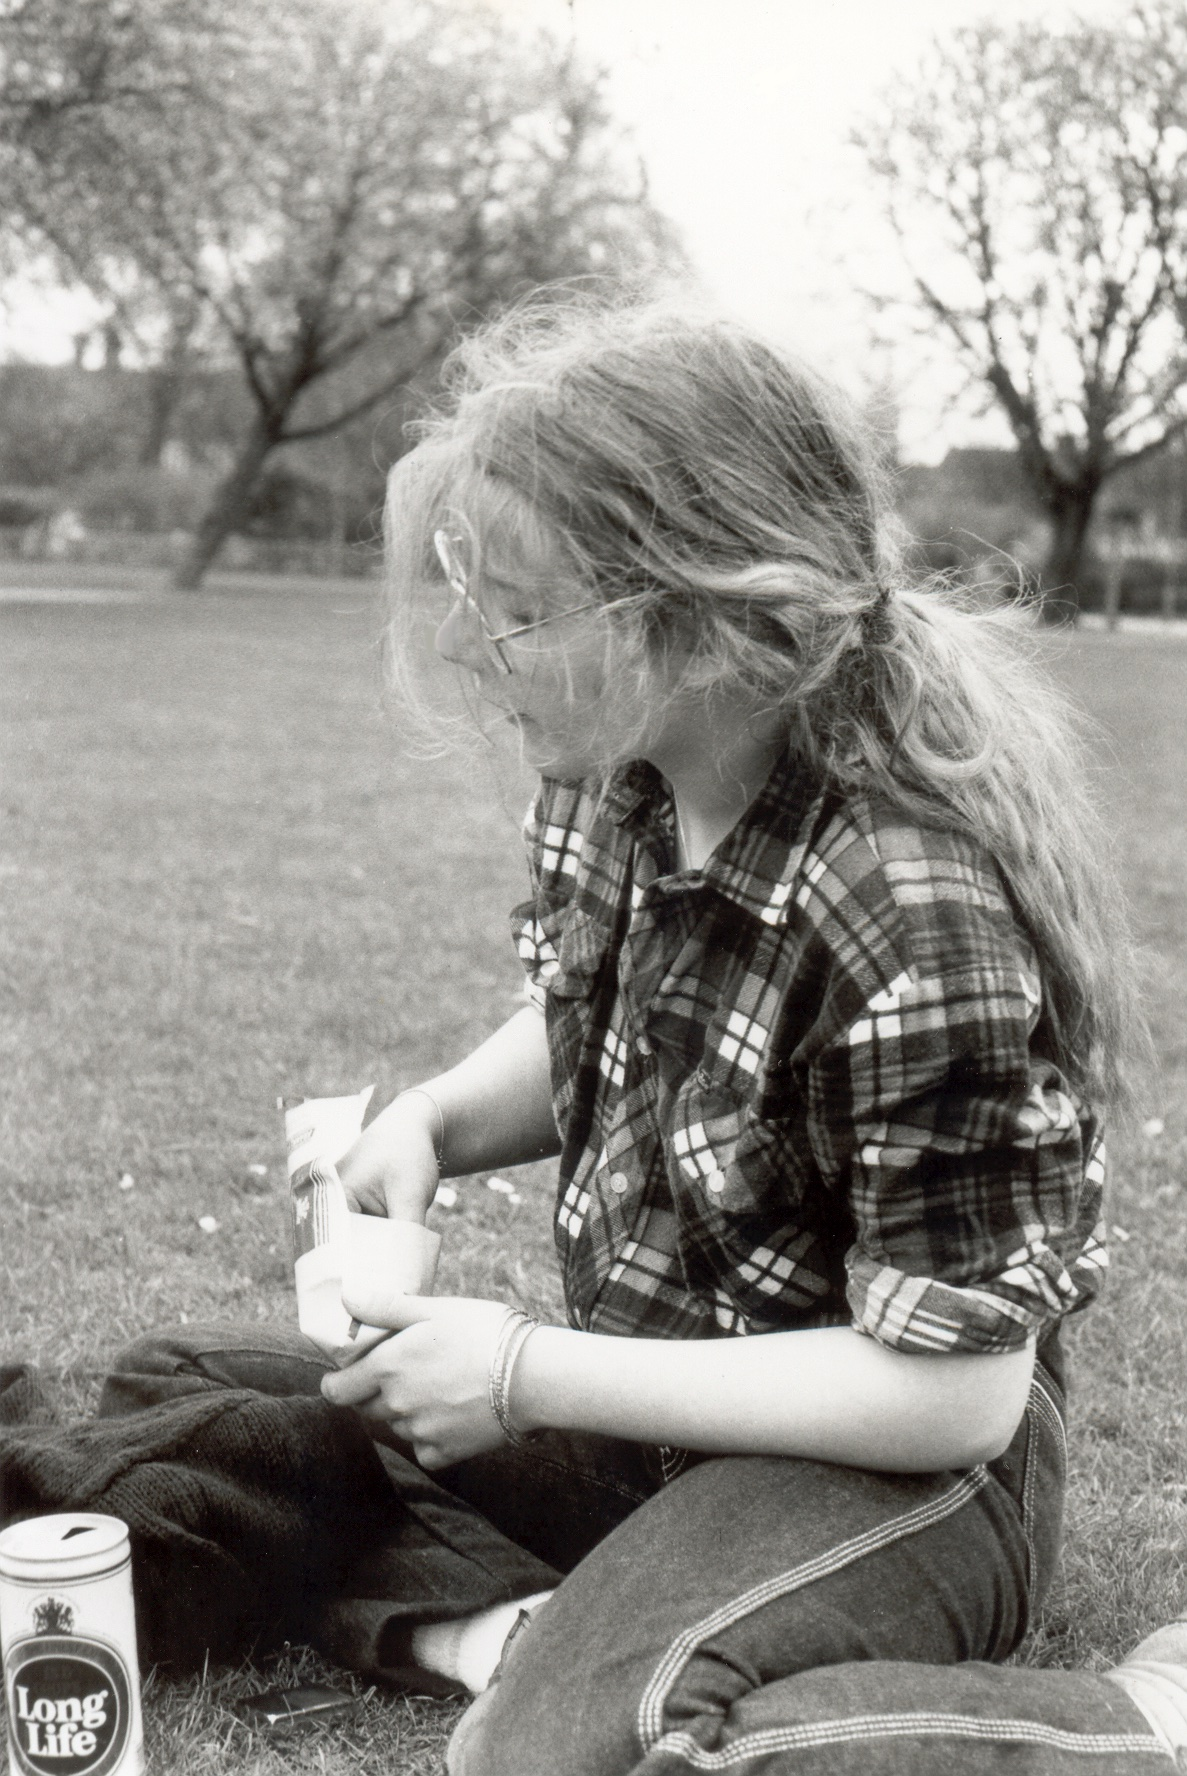 Black and white photo of teenage girl sitting on the grass and rolling a cigarette. She has long hair, tied back, gold-rimmed glasses, and there's a can of Long Life beer beside her.